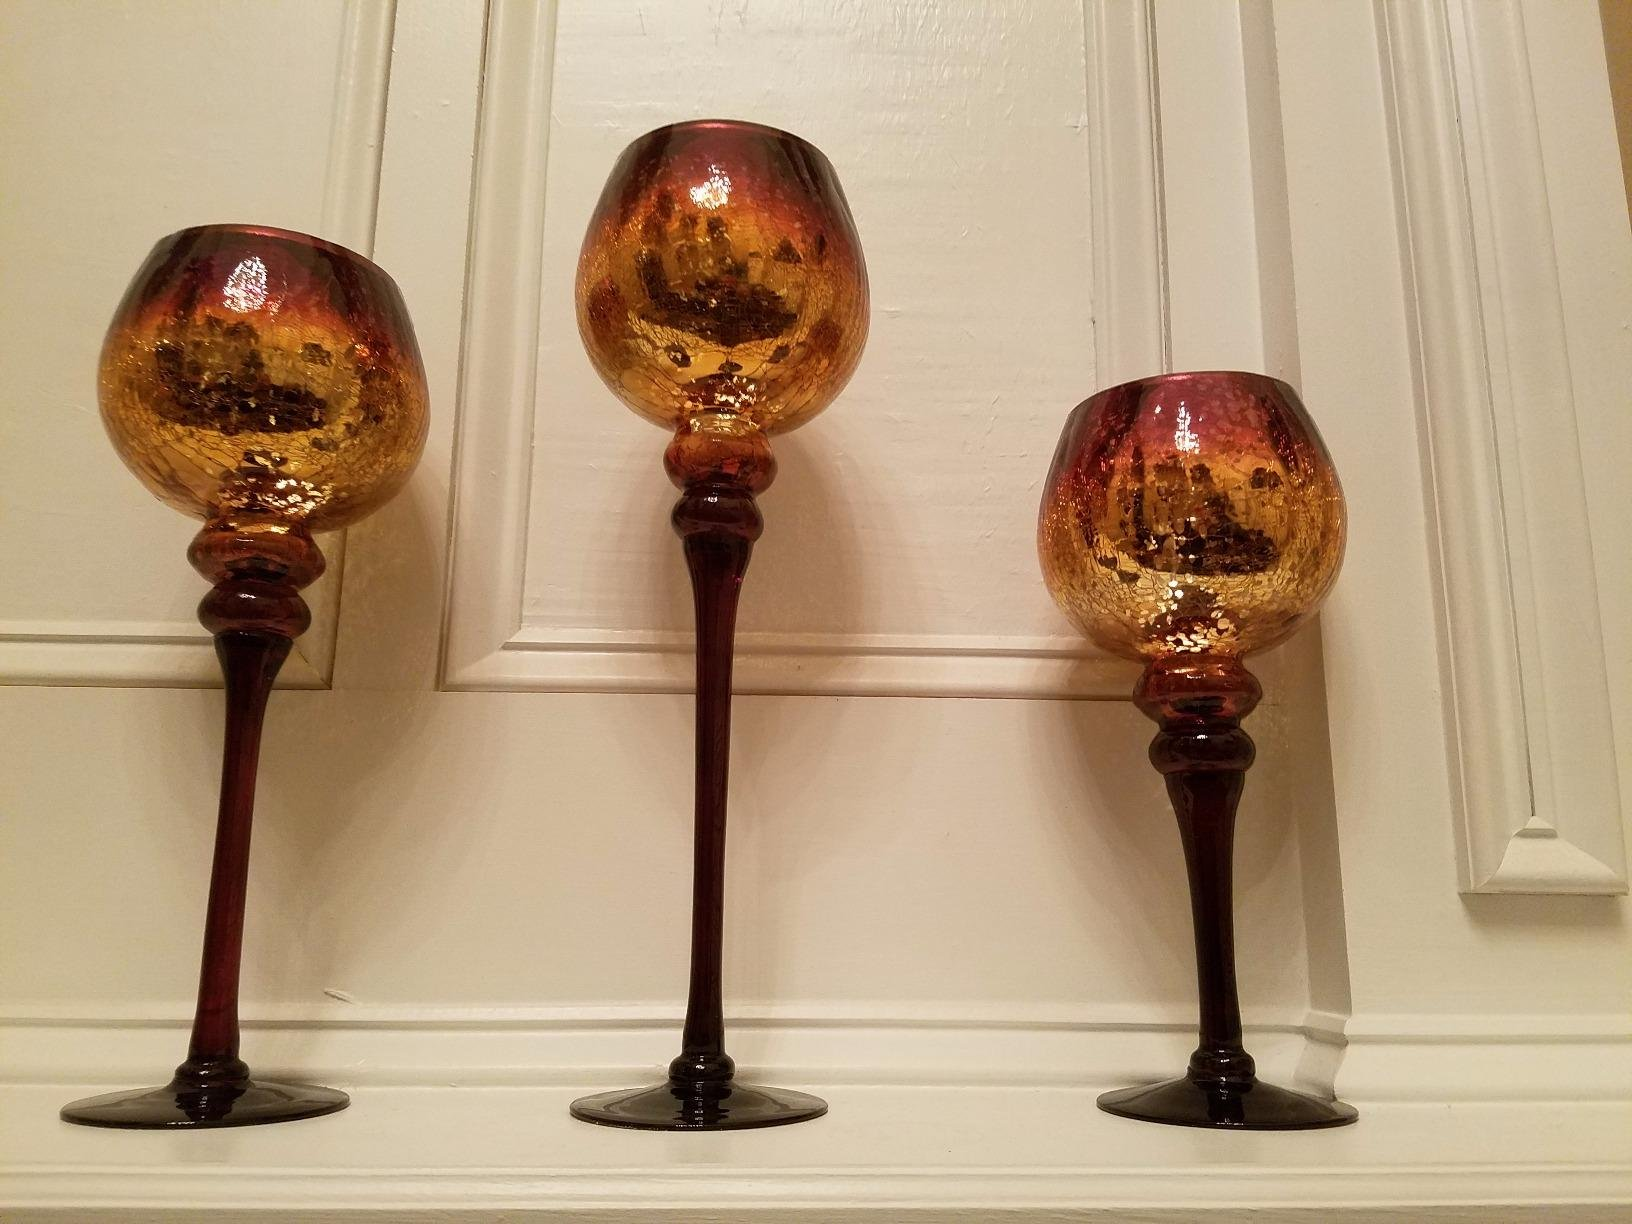 Set of 3 Brown Mercury Chocolate Crackle Finished Glass Hurricane Candle Holders ~ Decorative Sphere Ball Candle Holders ~ Home Decor & Party Centerpiece by Le'raze (Image #6)